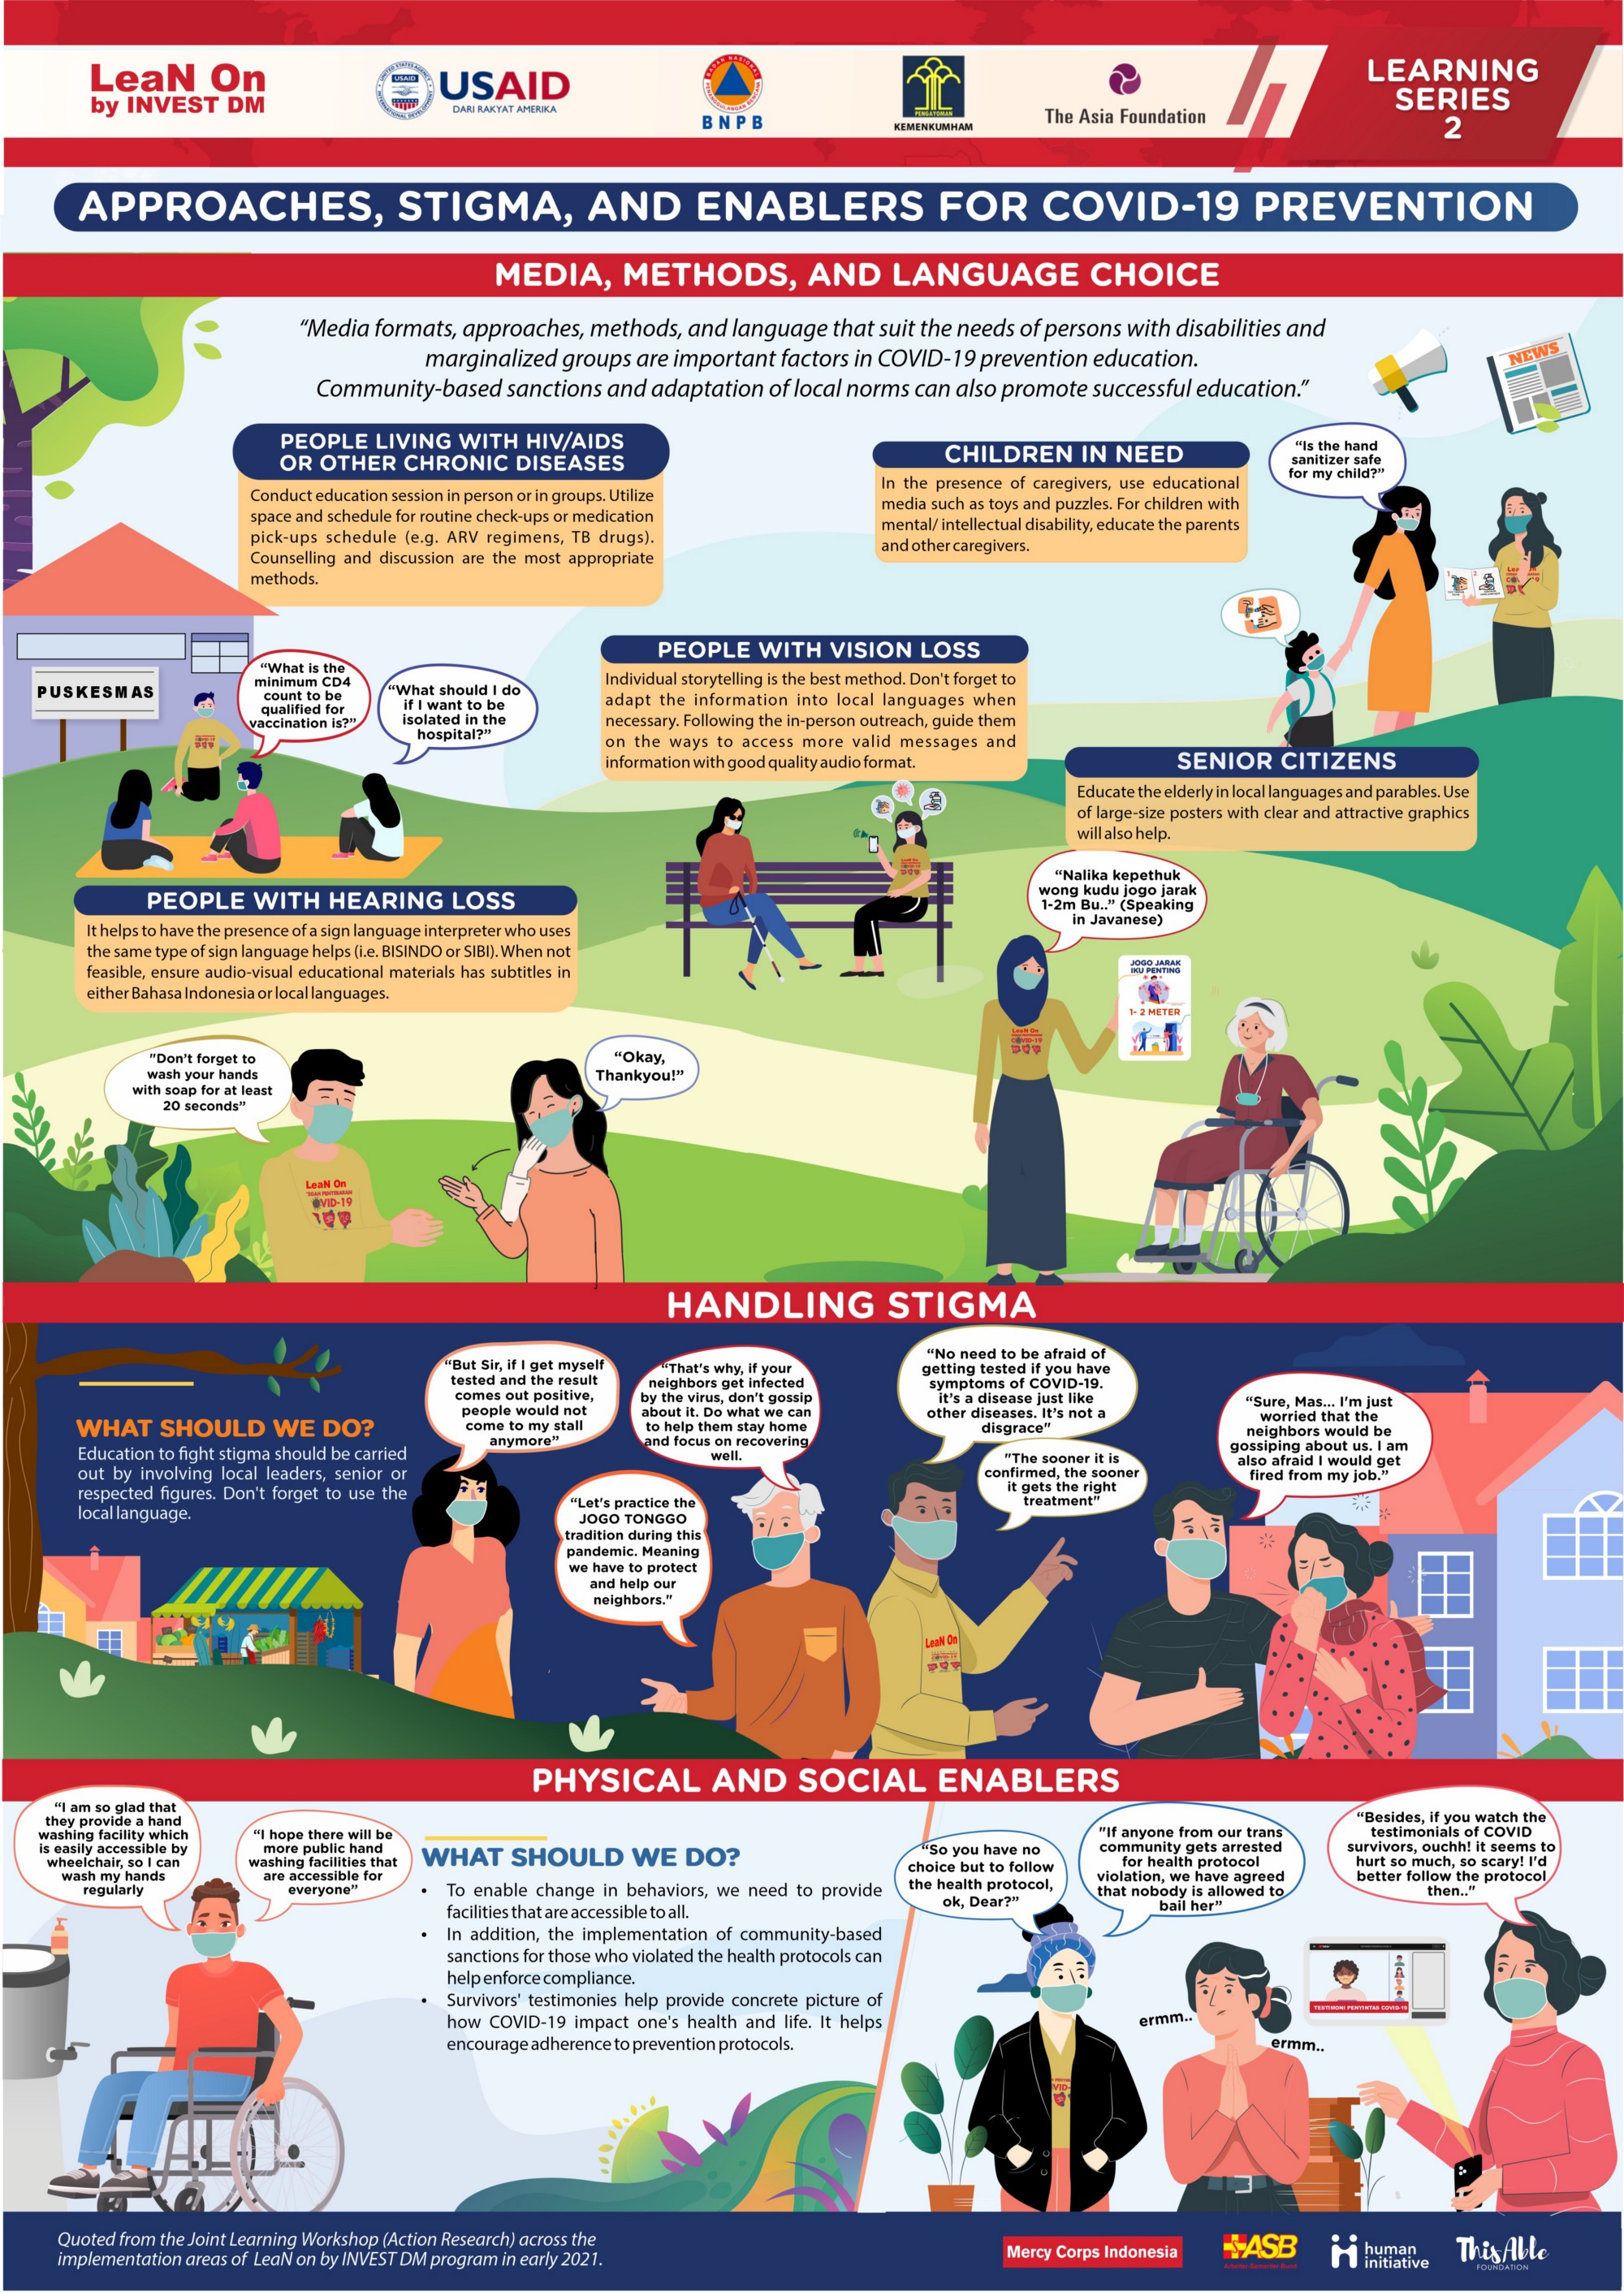 This infographic contains recommendations for educational activities to prevent the spread of COVID-19 targeting people with disabilities and other marginalized members of society. An audio version of the infographic will be added to this page soon.